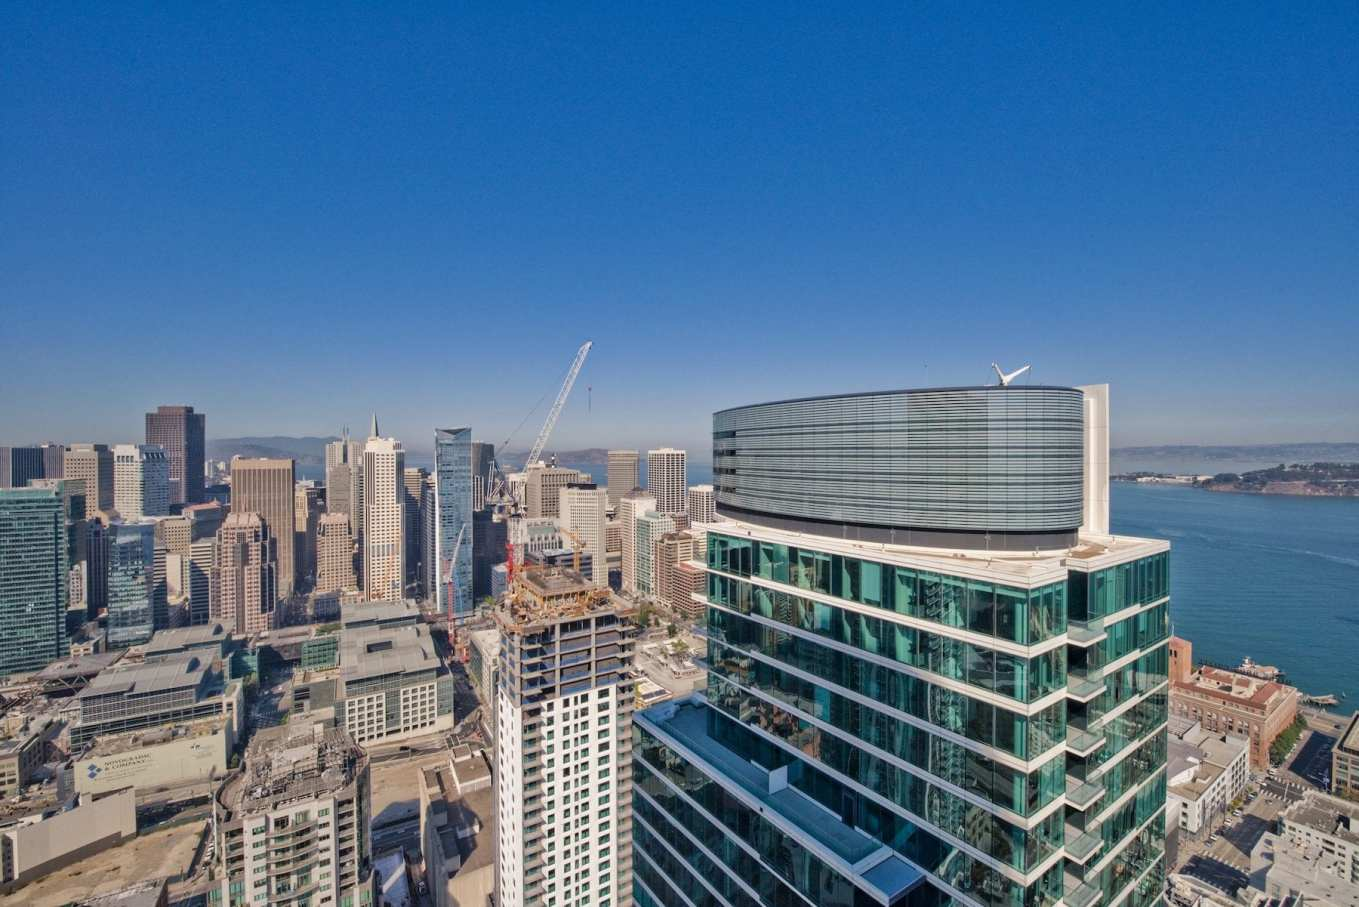 San Francisco skyline from One Rincon Hill penthouse. Photo: JODI Group, Inc. Real Estate.